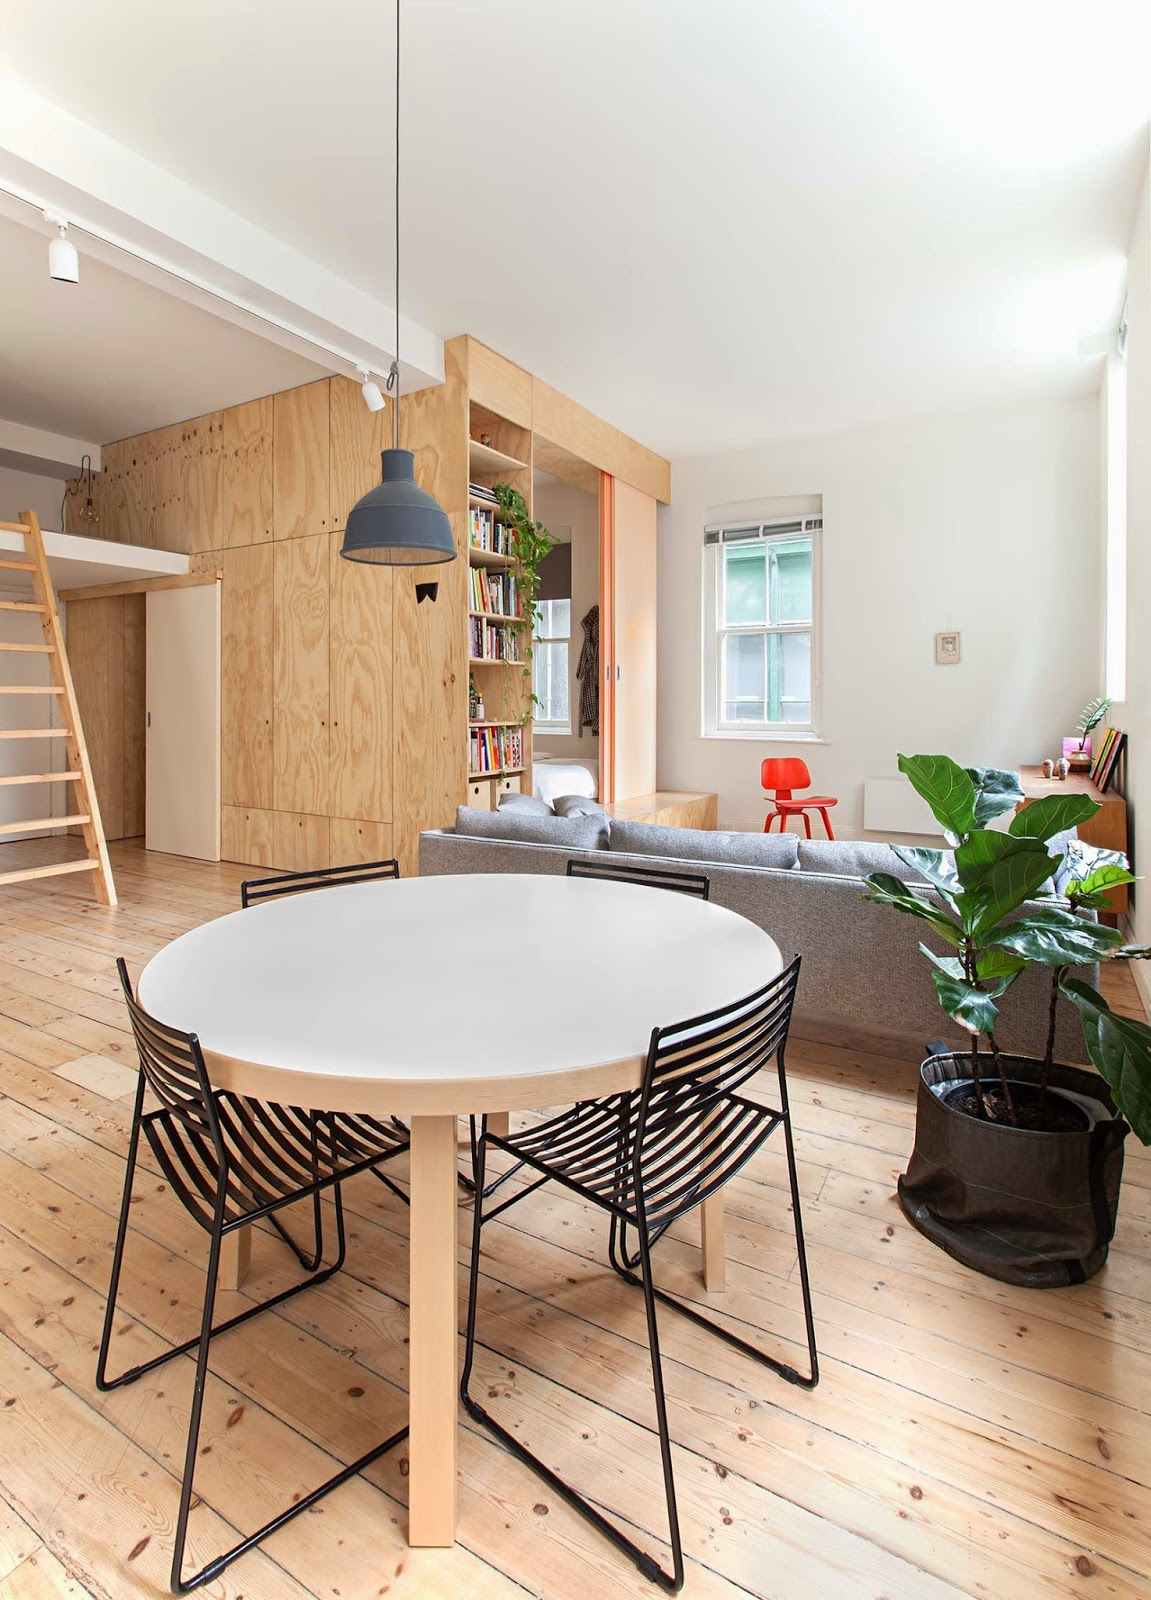 Jelanie-blog-Plywood-home-with-a-touch-of-salmon-1